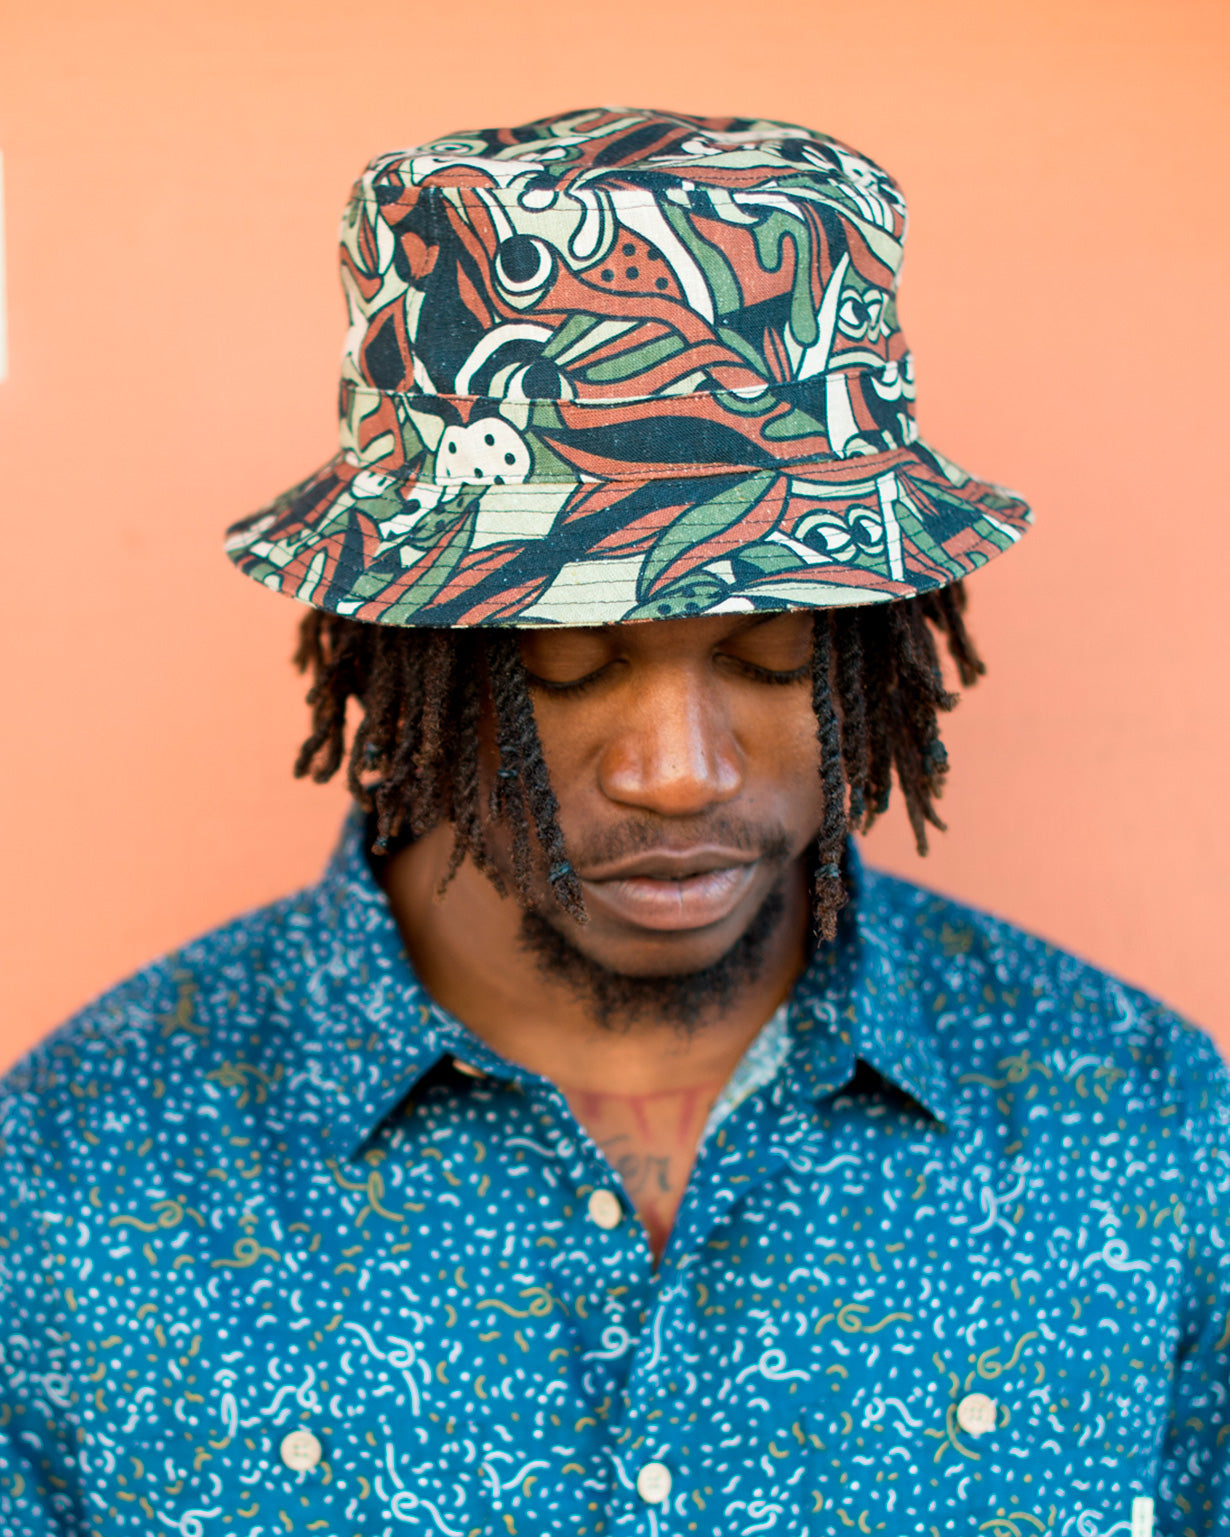 Camo Mood by Vincs - Hemp Bucket